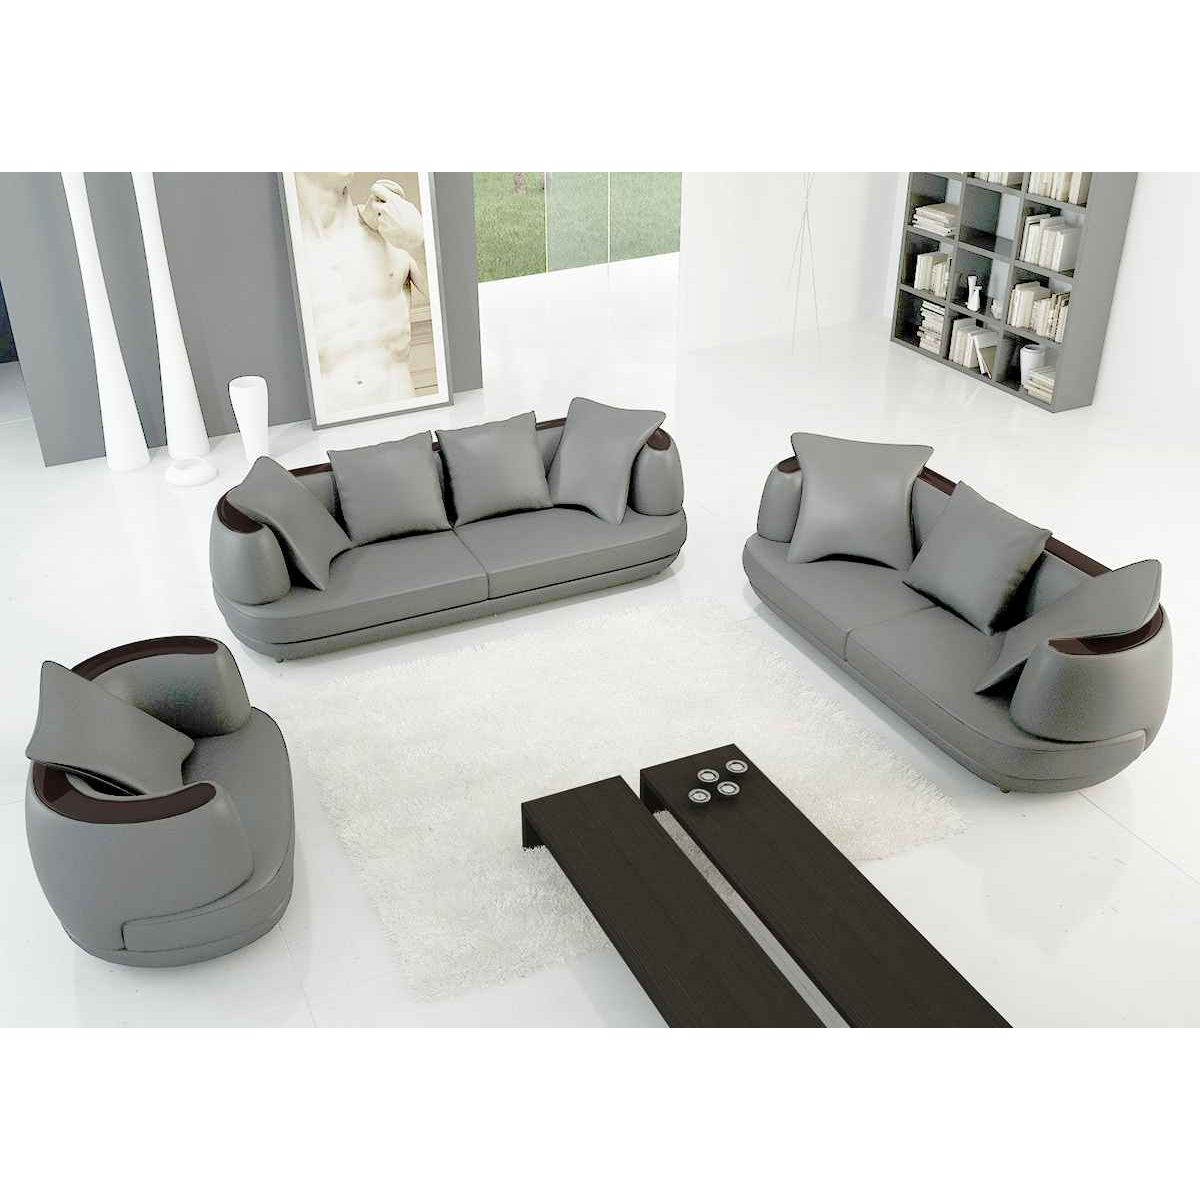 Deco in paris ensemble canape 3 2 1 places en cuir gris for Canape daim gris